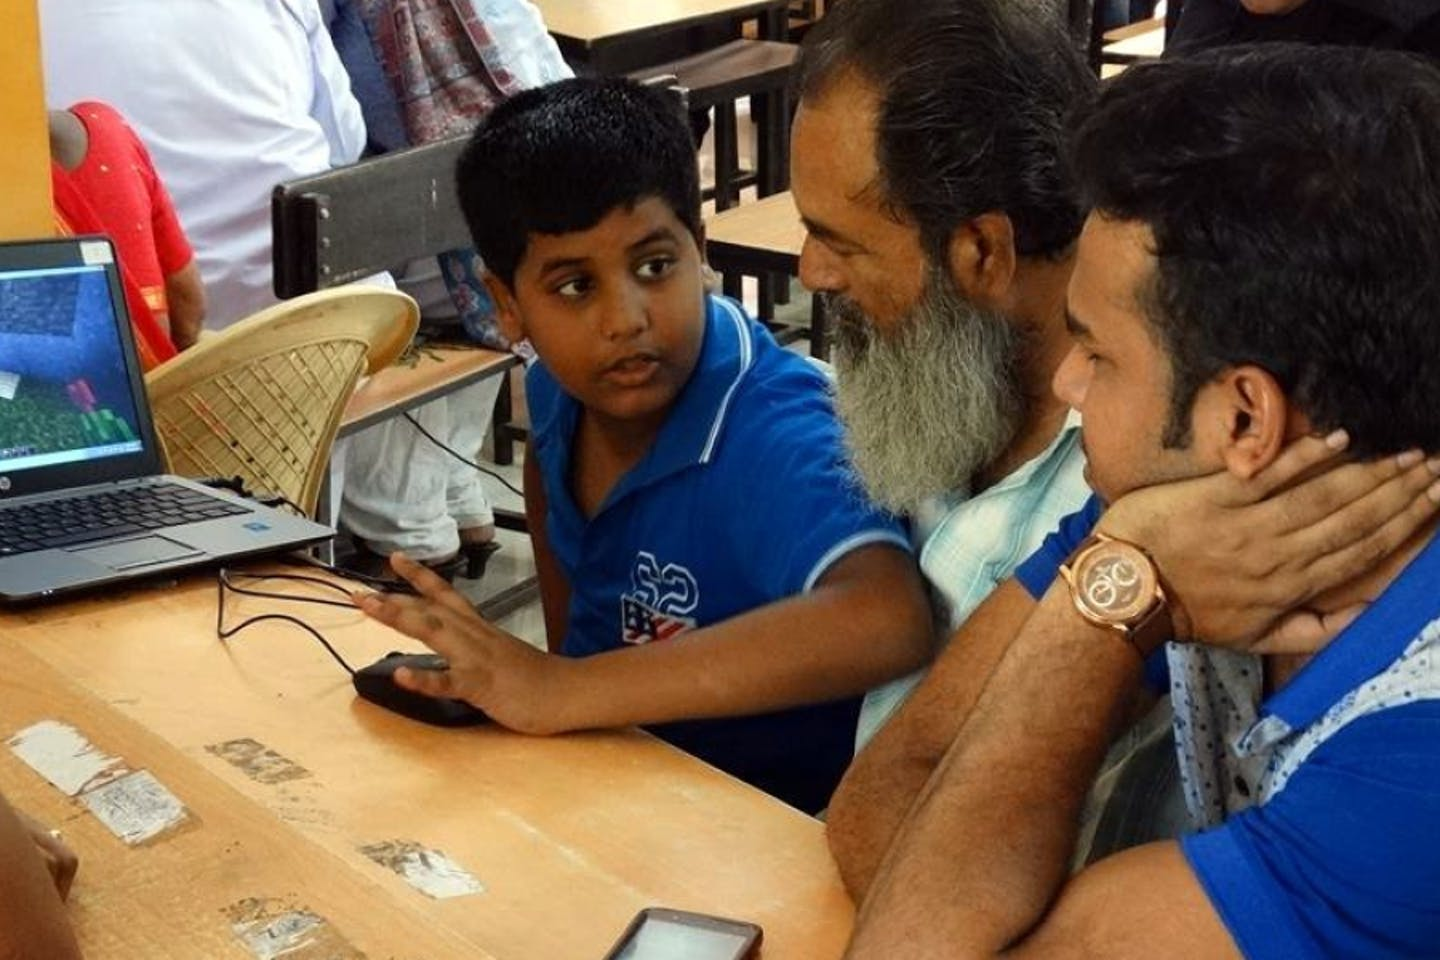 Mumbai residents play Minecraft to design community spot